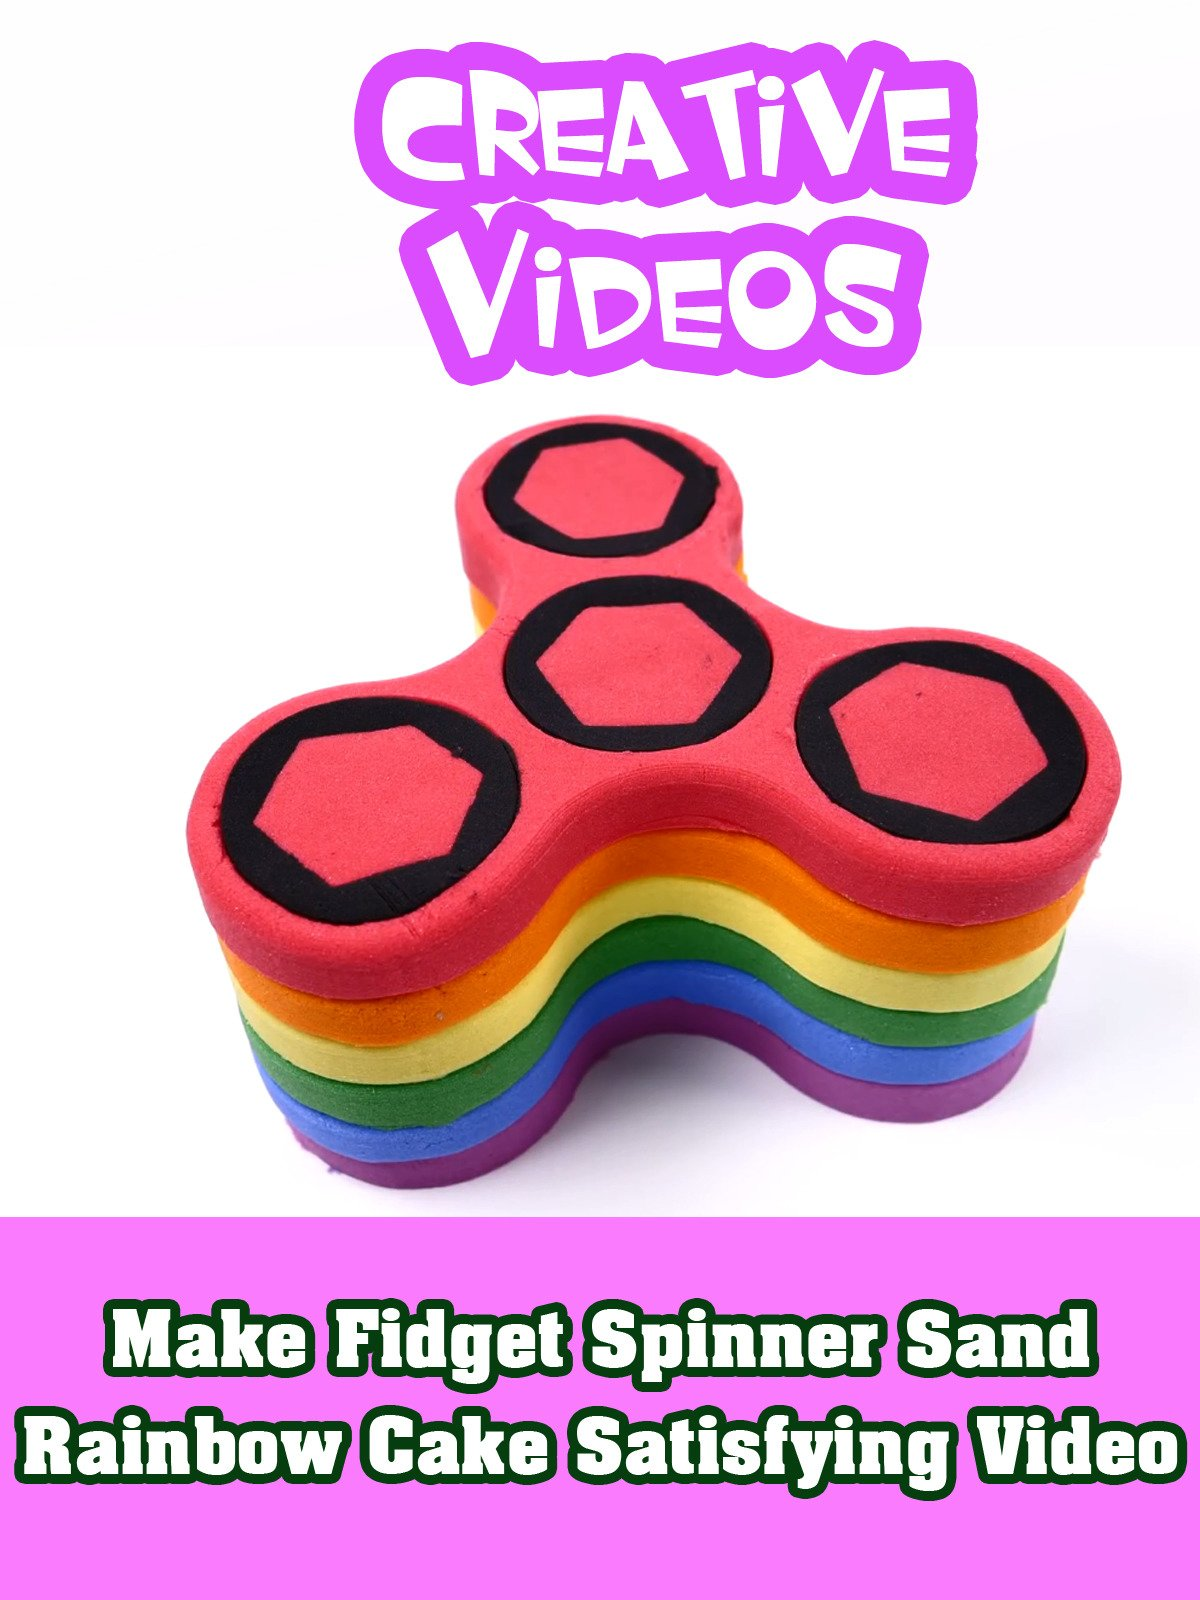 Make Fidget Spinner Sand Rainbow Cake Satisfying Video